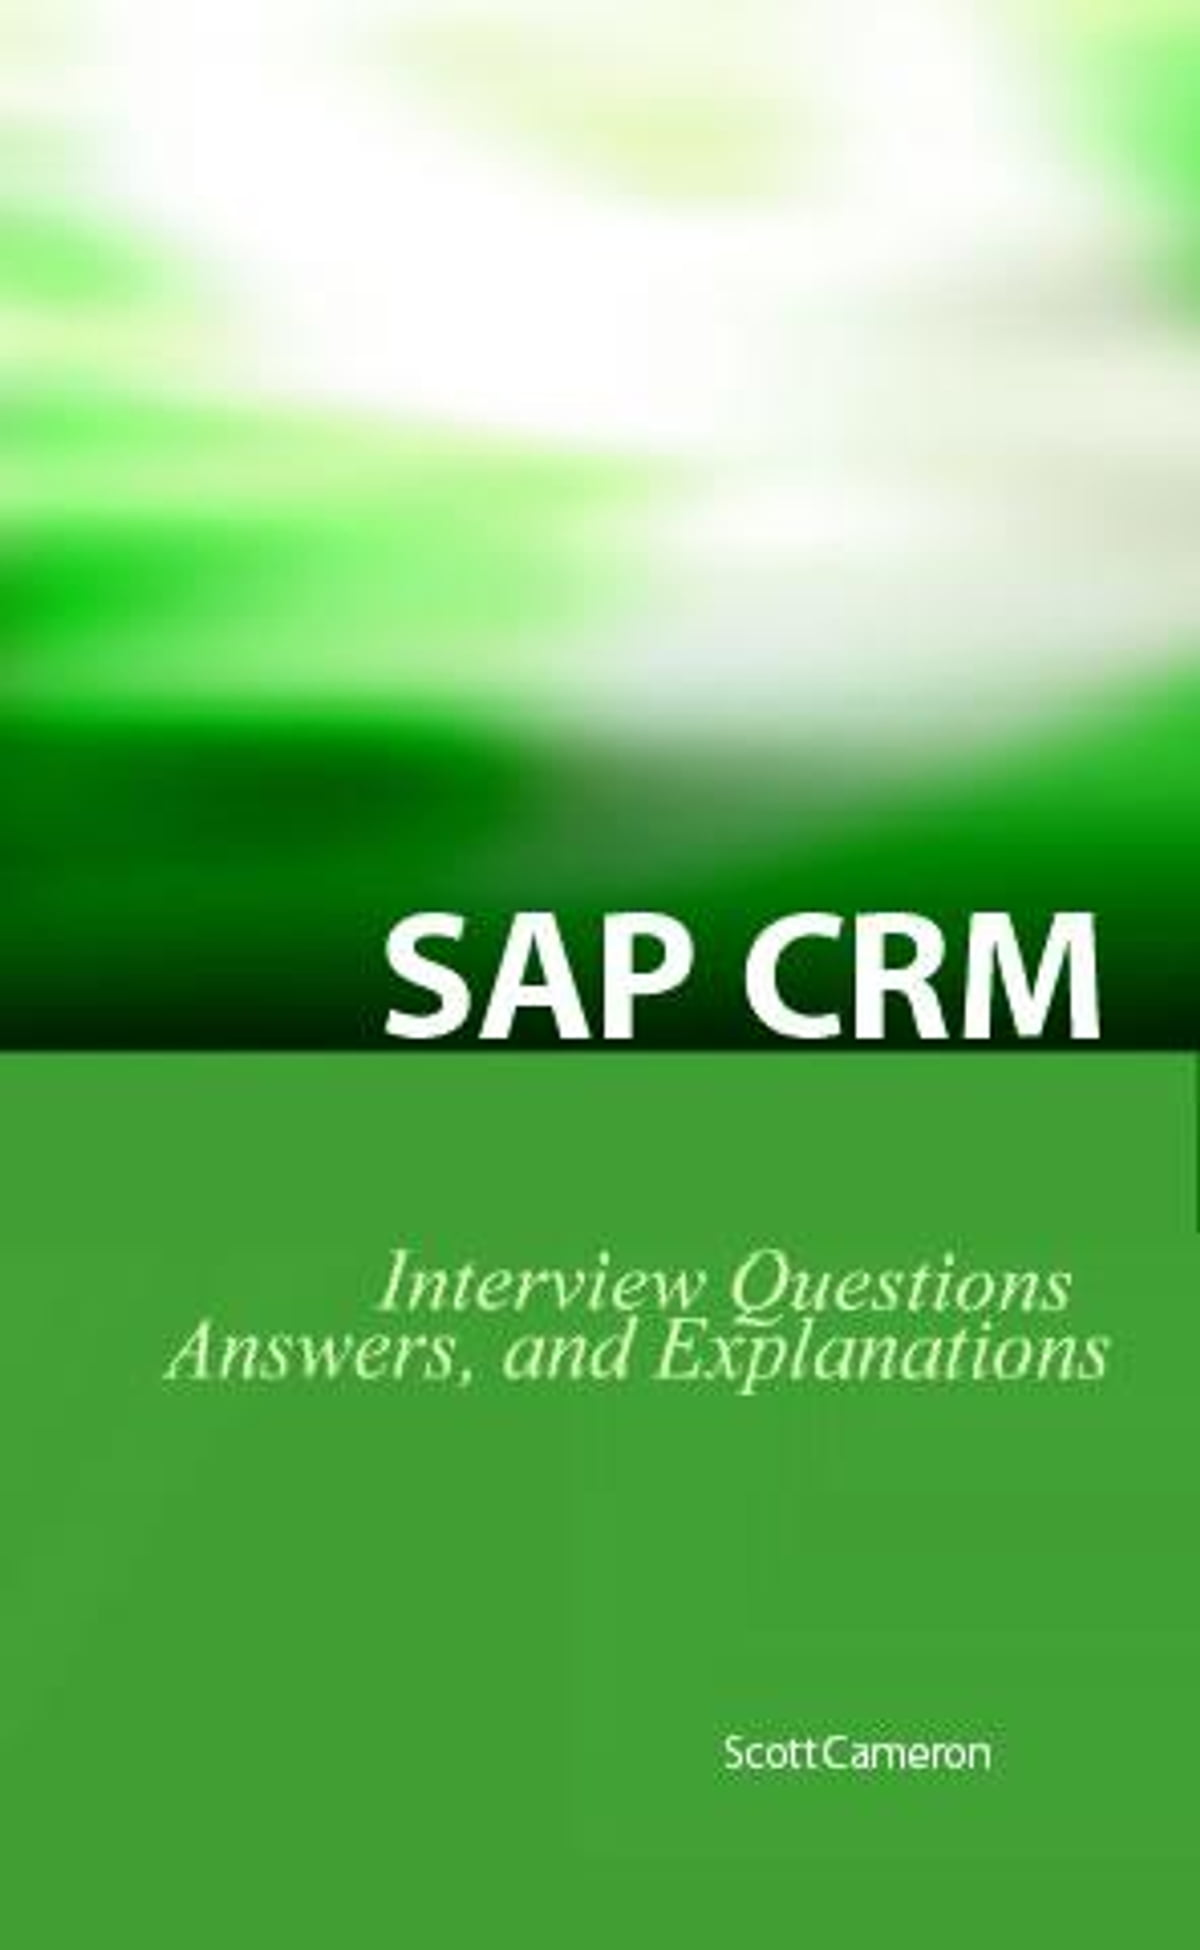 sap crm interview questions answers and explanations sap sap crm interview questions answers and explanations sap customer relationship management certification review ebook by cameron scott 9781933804149